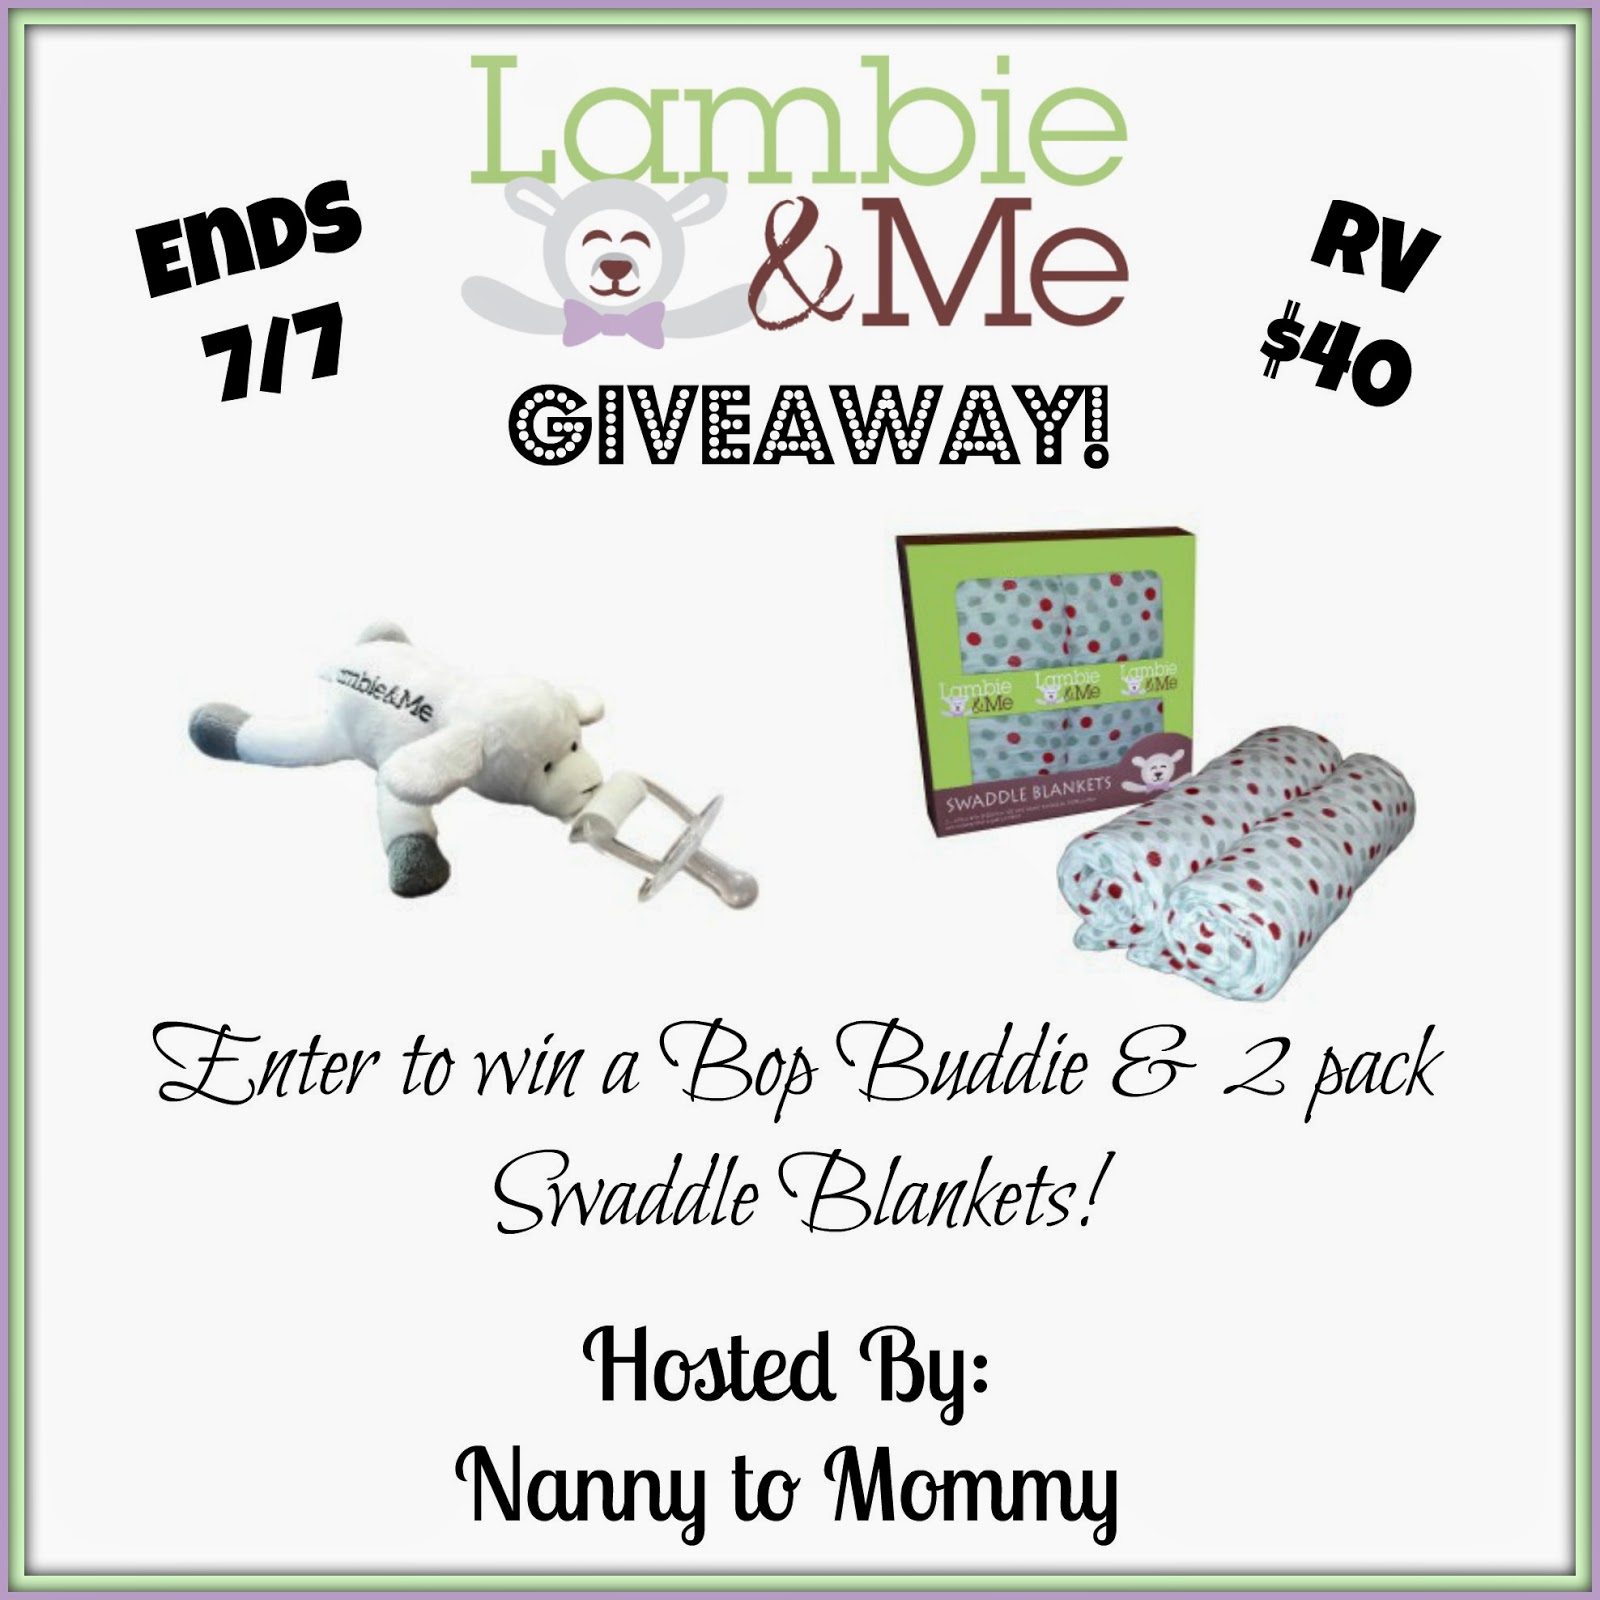 Enter to #win a Lambie & Me Prize Pack during the #ThirdTimesACharm #Giveaway Hop! RV $40 Ends 7/7